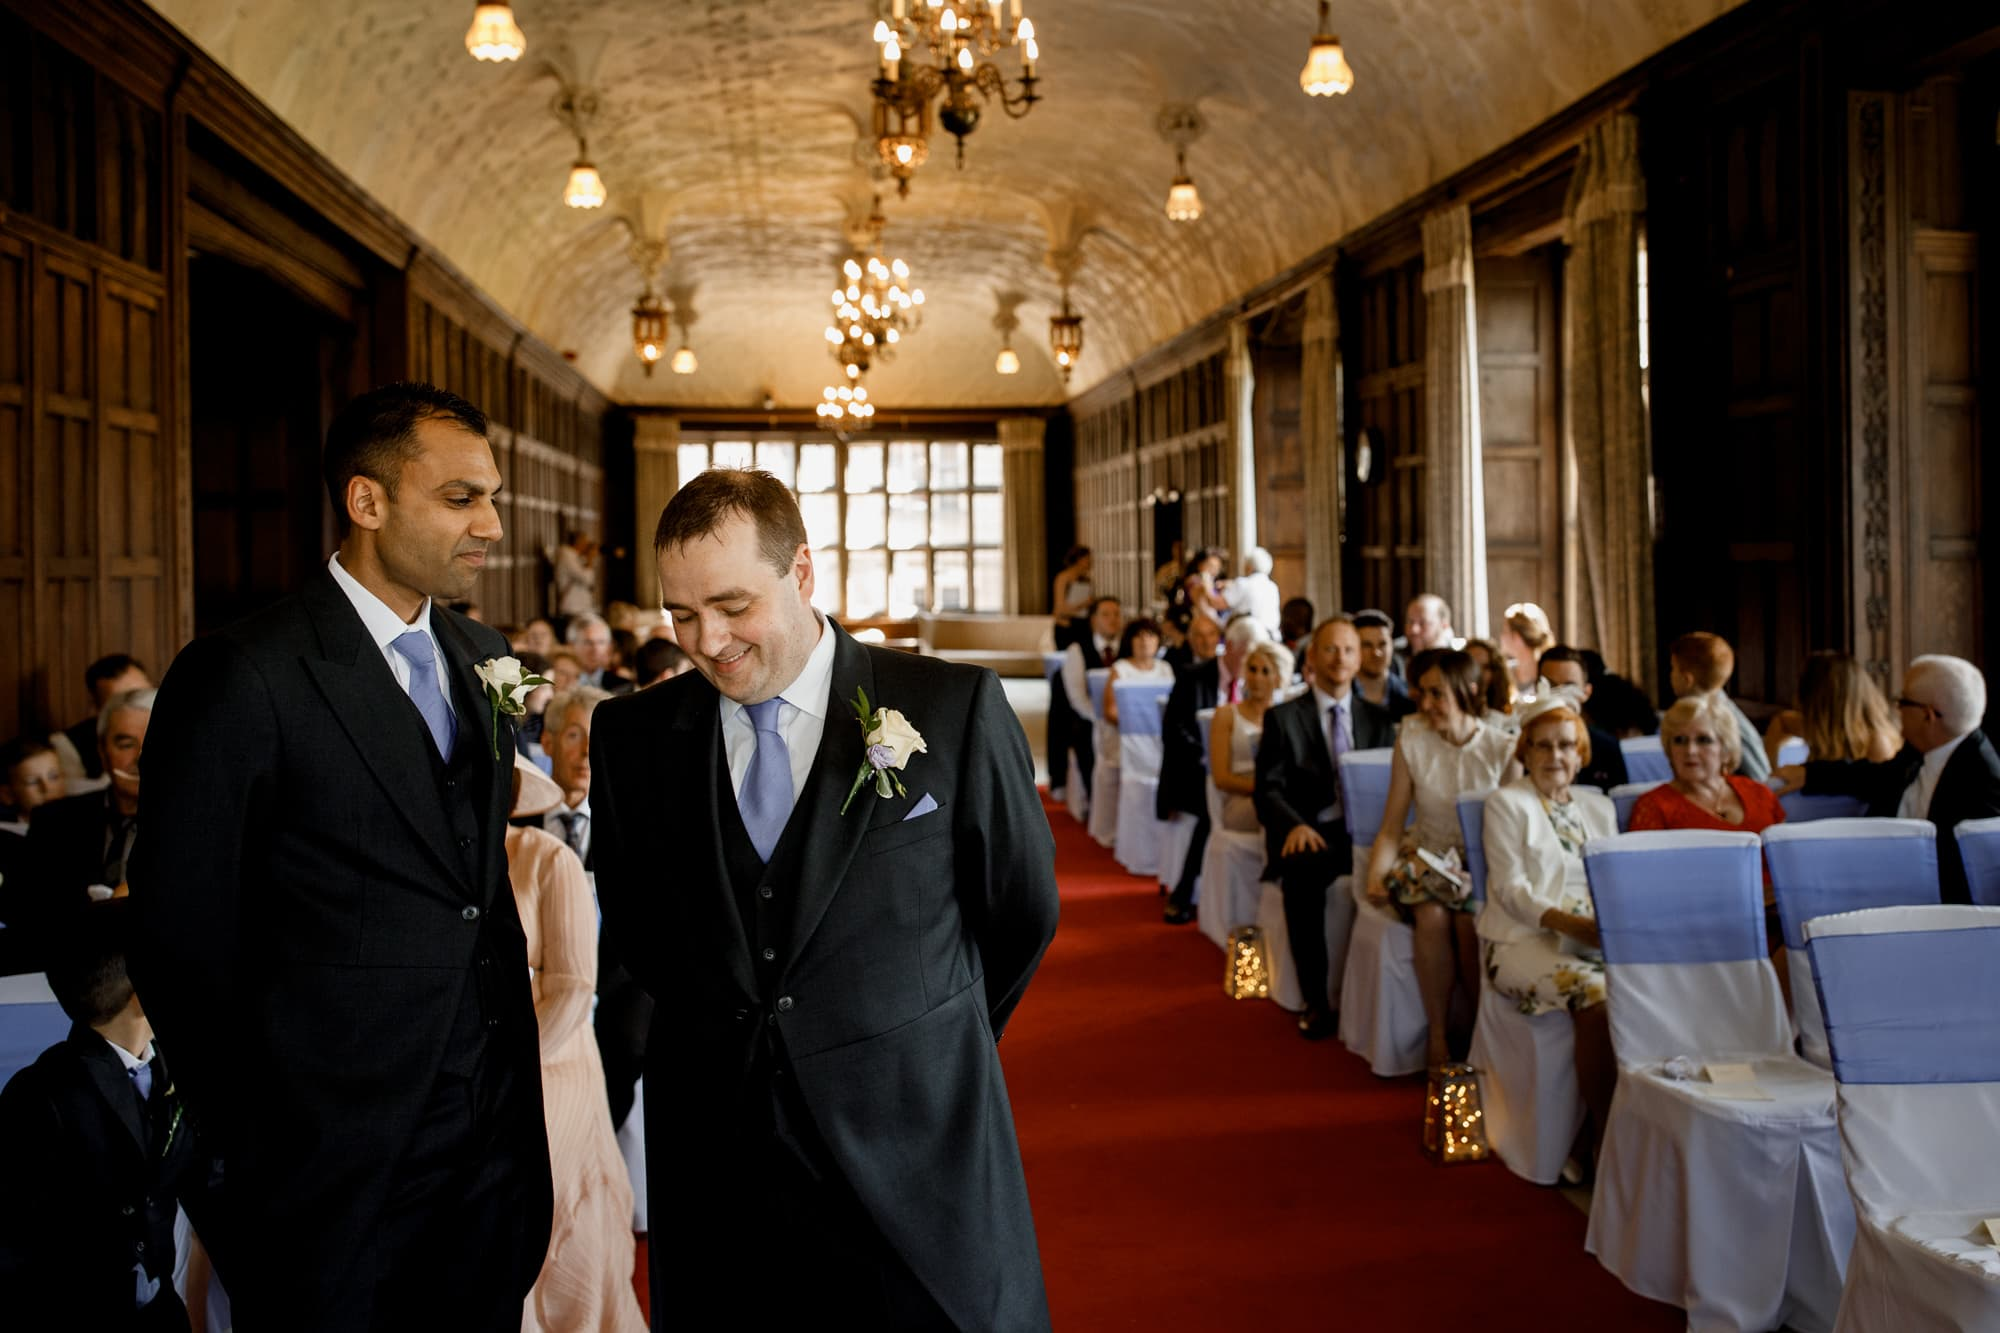 groom waiting for bride at front of ceremony